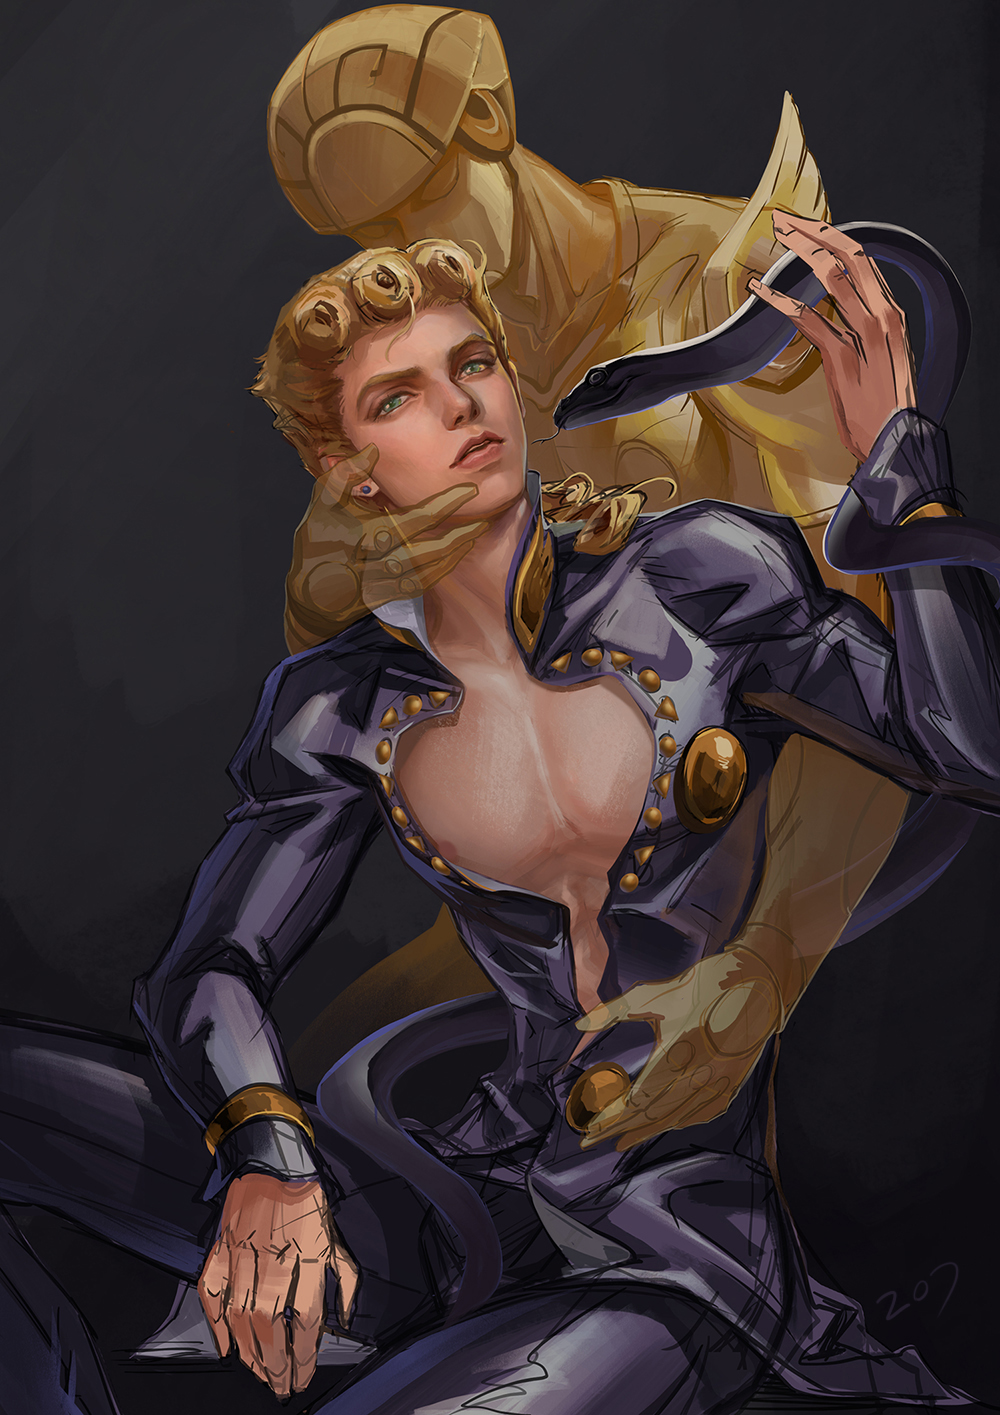 207 2boys blonde_hair giorno_giovanna gold_experience green_eyes highres jojo_no_kimyou_na_bouken male_focus multiple_boys nipple_slip nipples realistic snake stand_(jojo) transparent vento_aureo